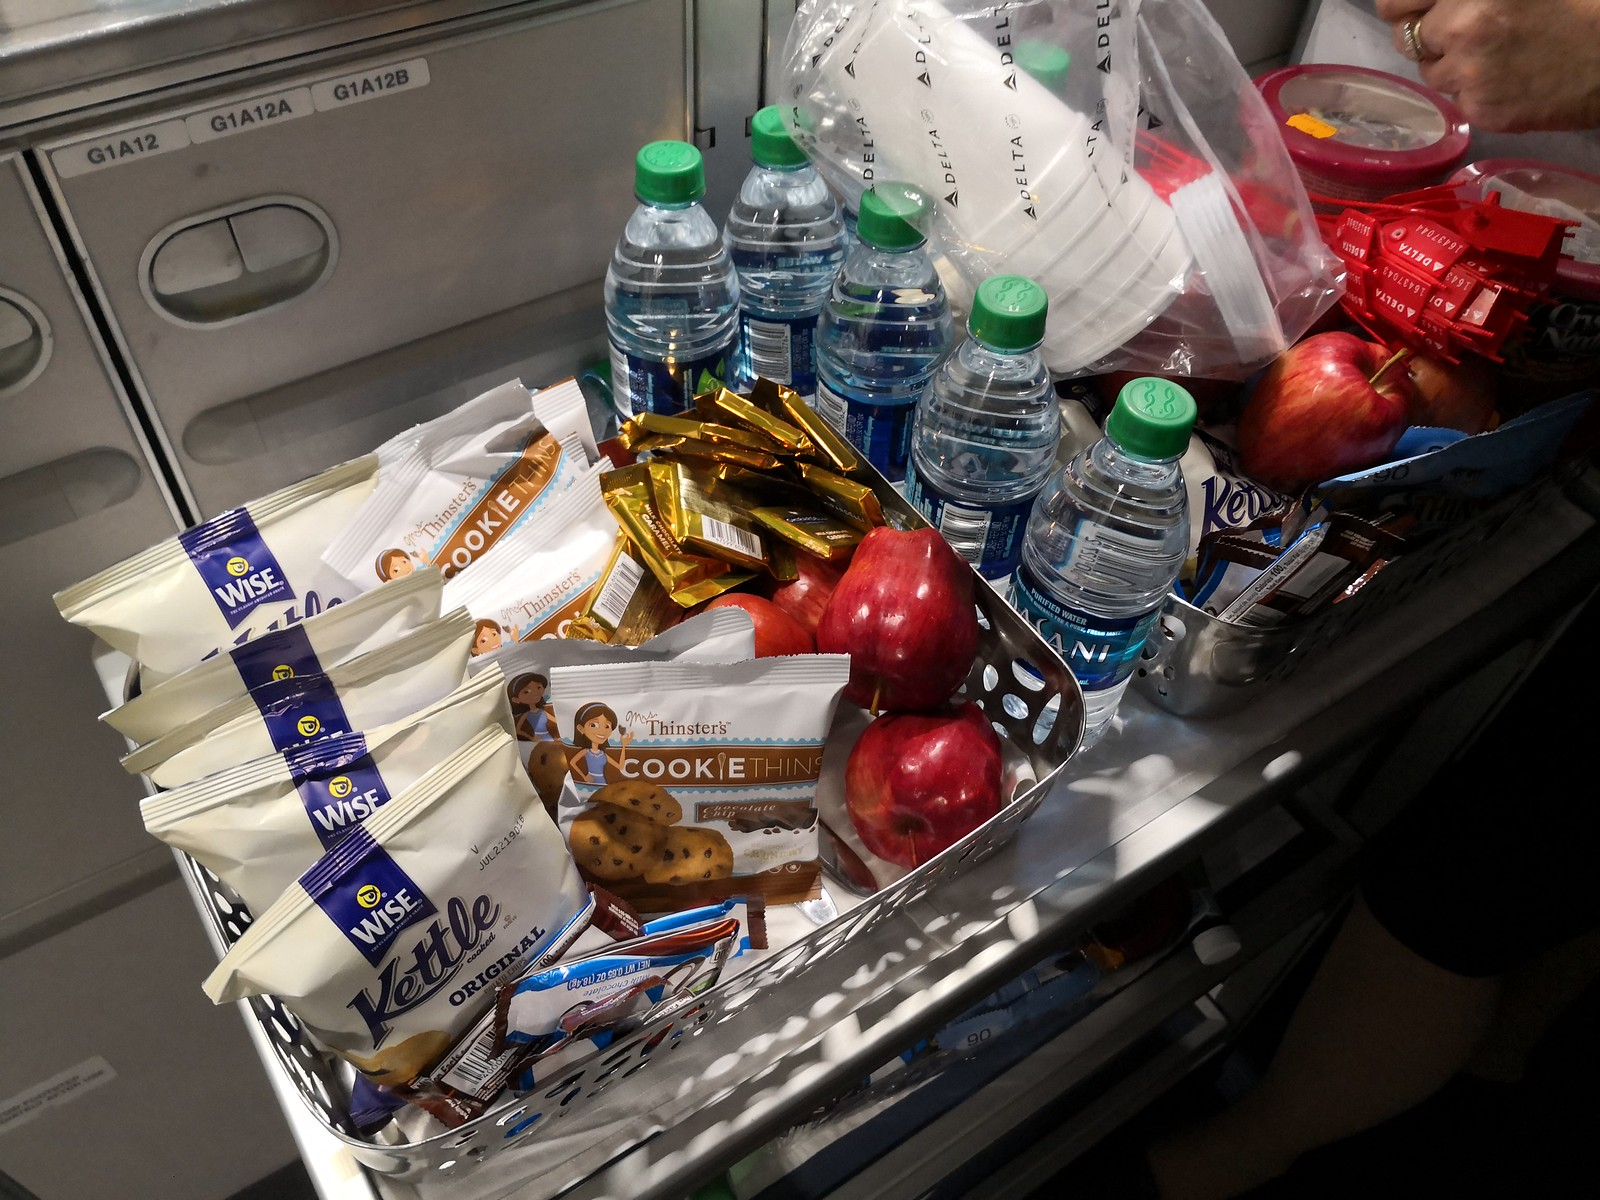 Snacks in the galley